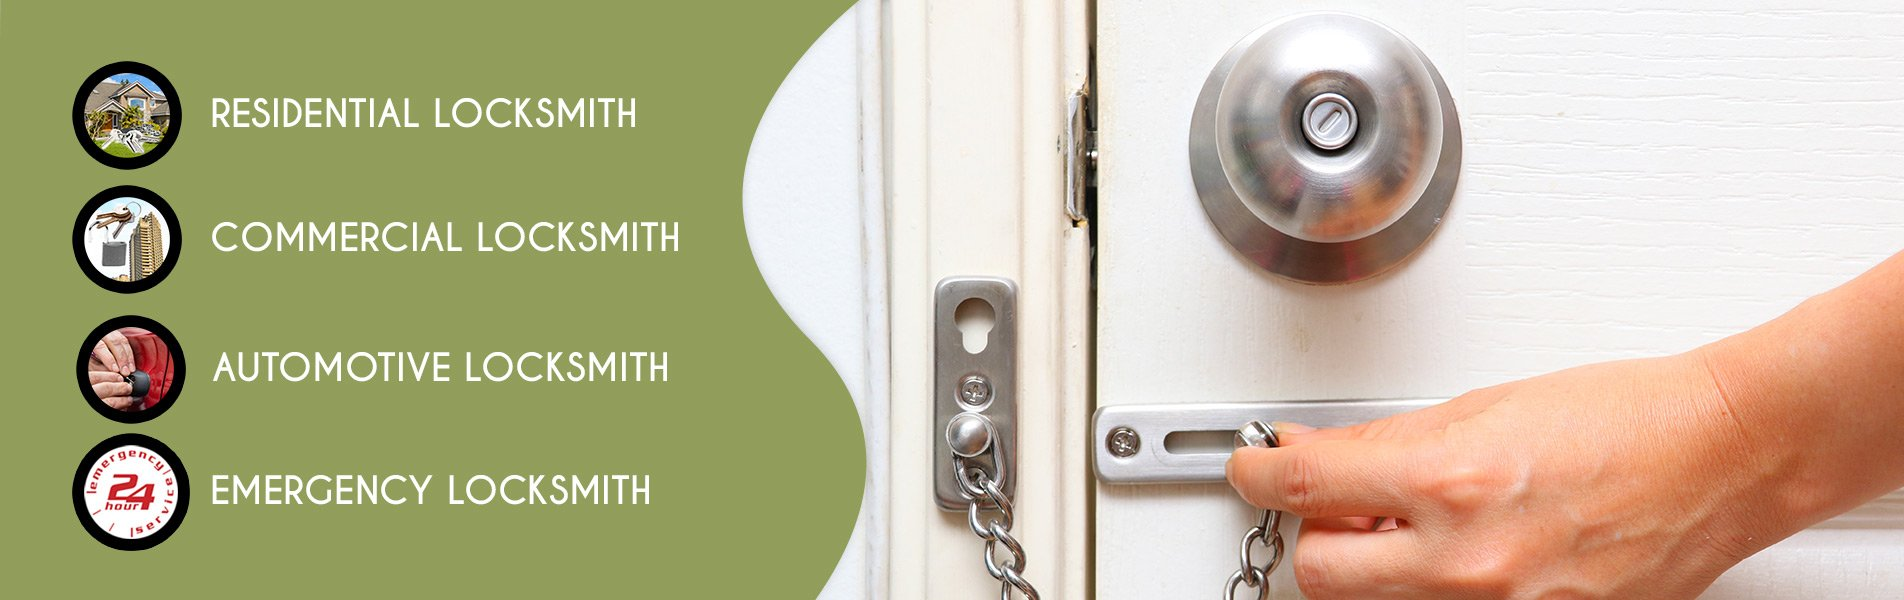 residential locksmith. New Britain Locksmith Store Britain, CT 860-359-9161 Residential